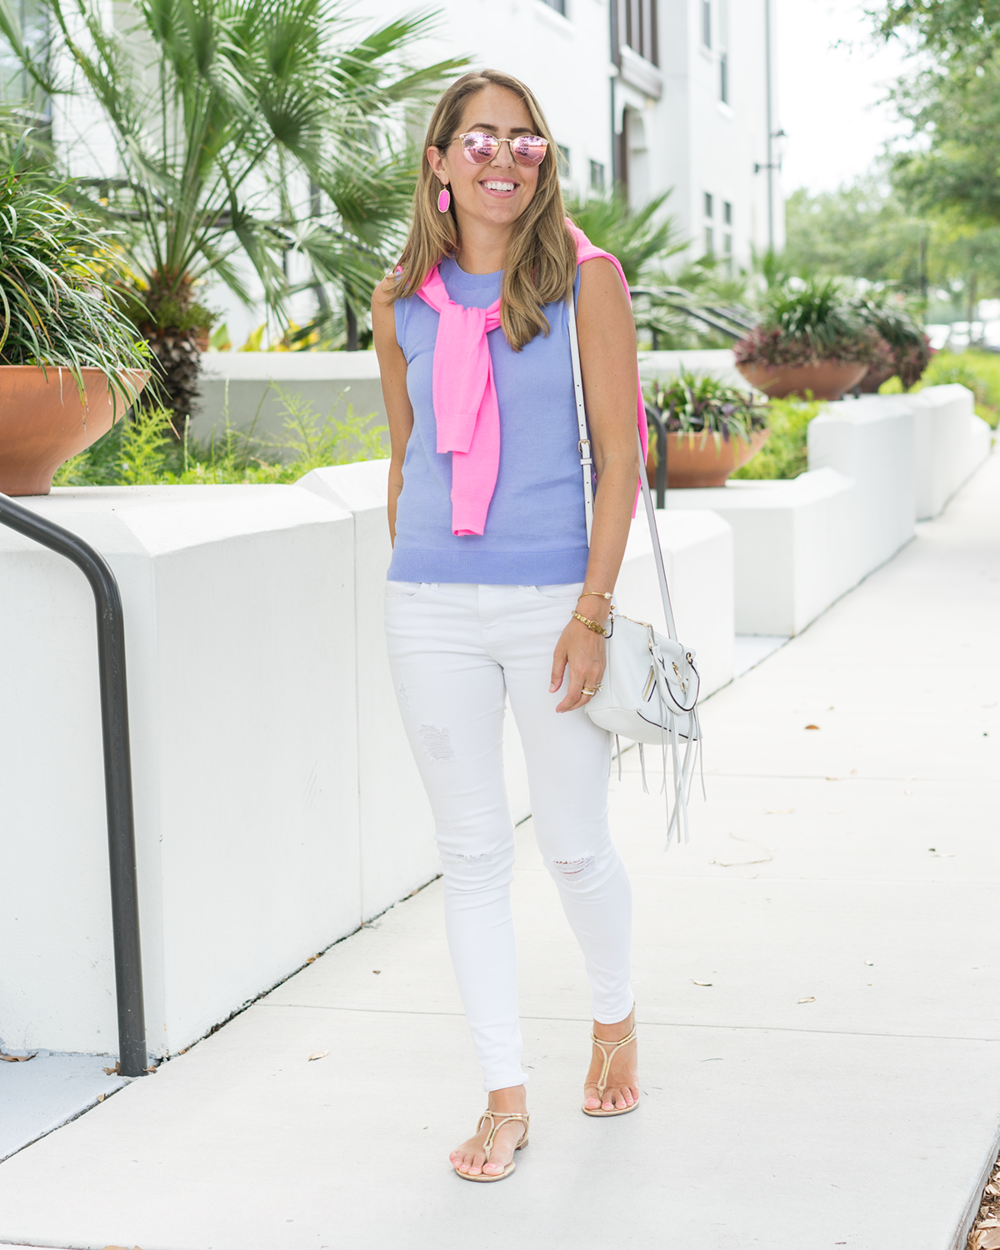 Neon pink cardigan, periwinkle shell, white jeans